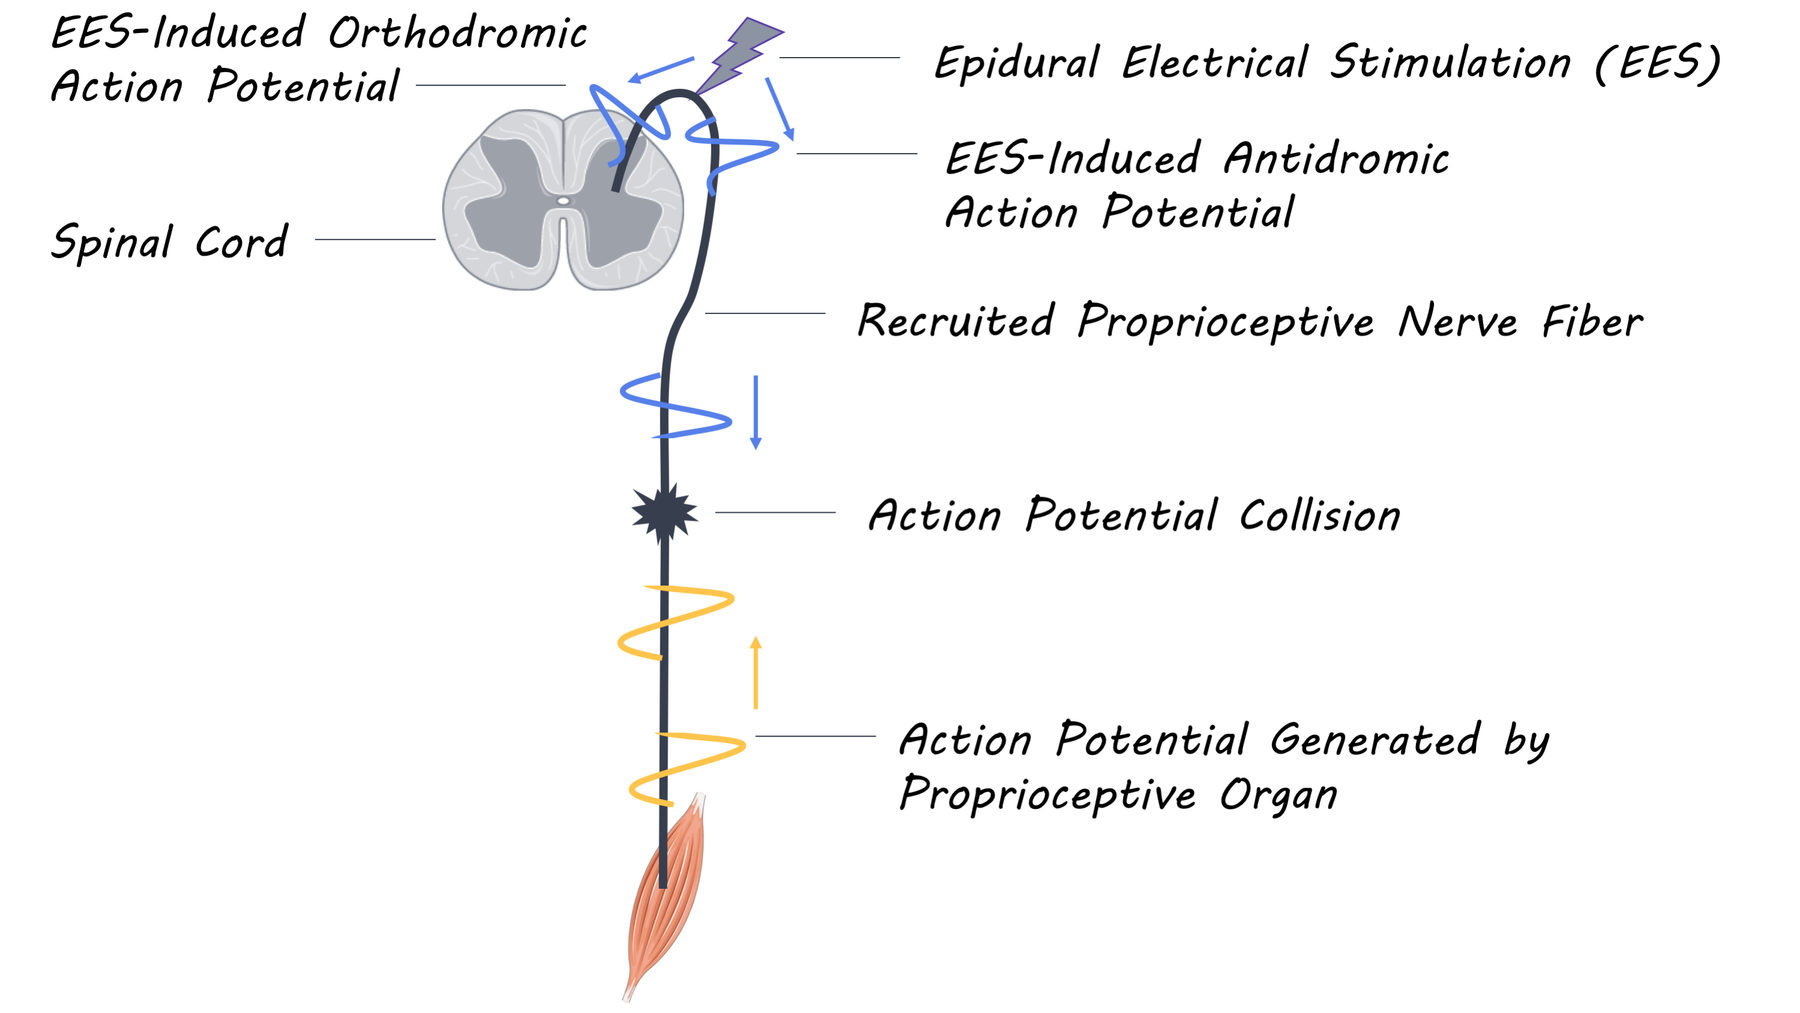 spinalcord_image.png